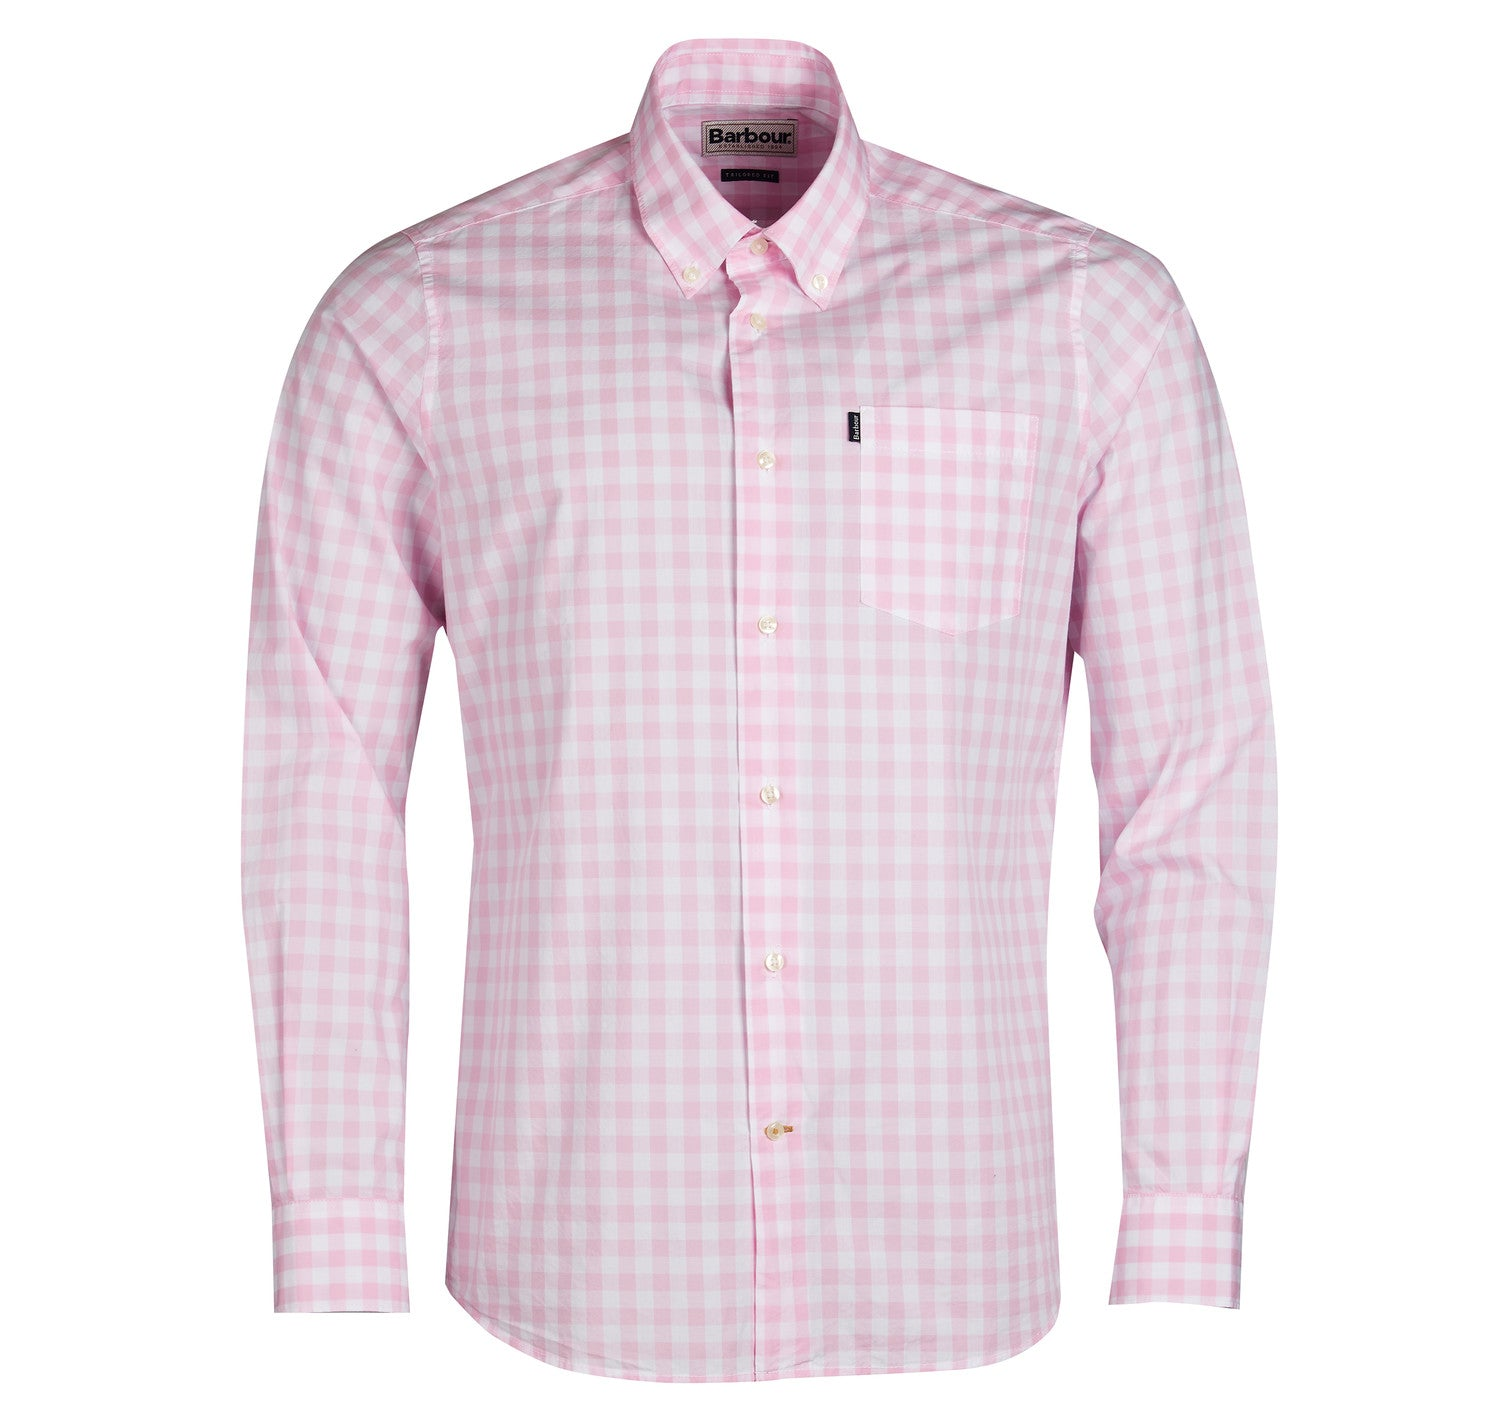 Barbour Gingham 3 Long Sleeved Shirt for Men in Pink